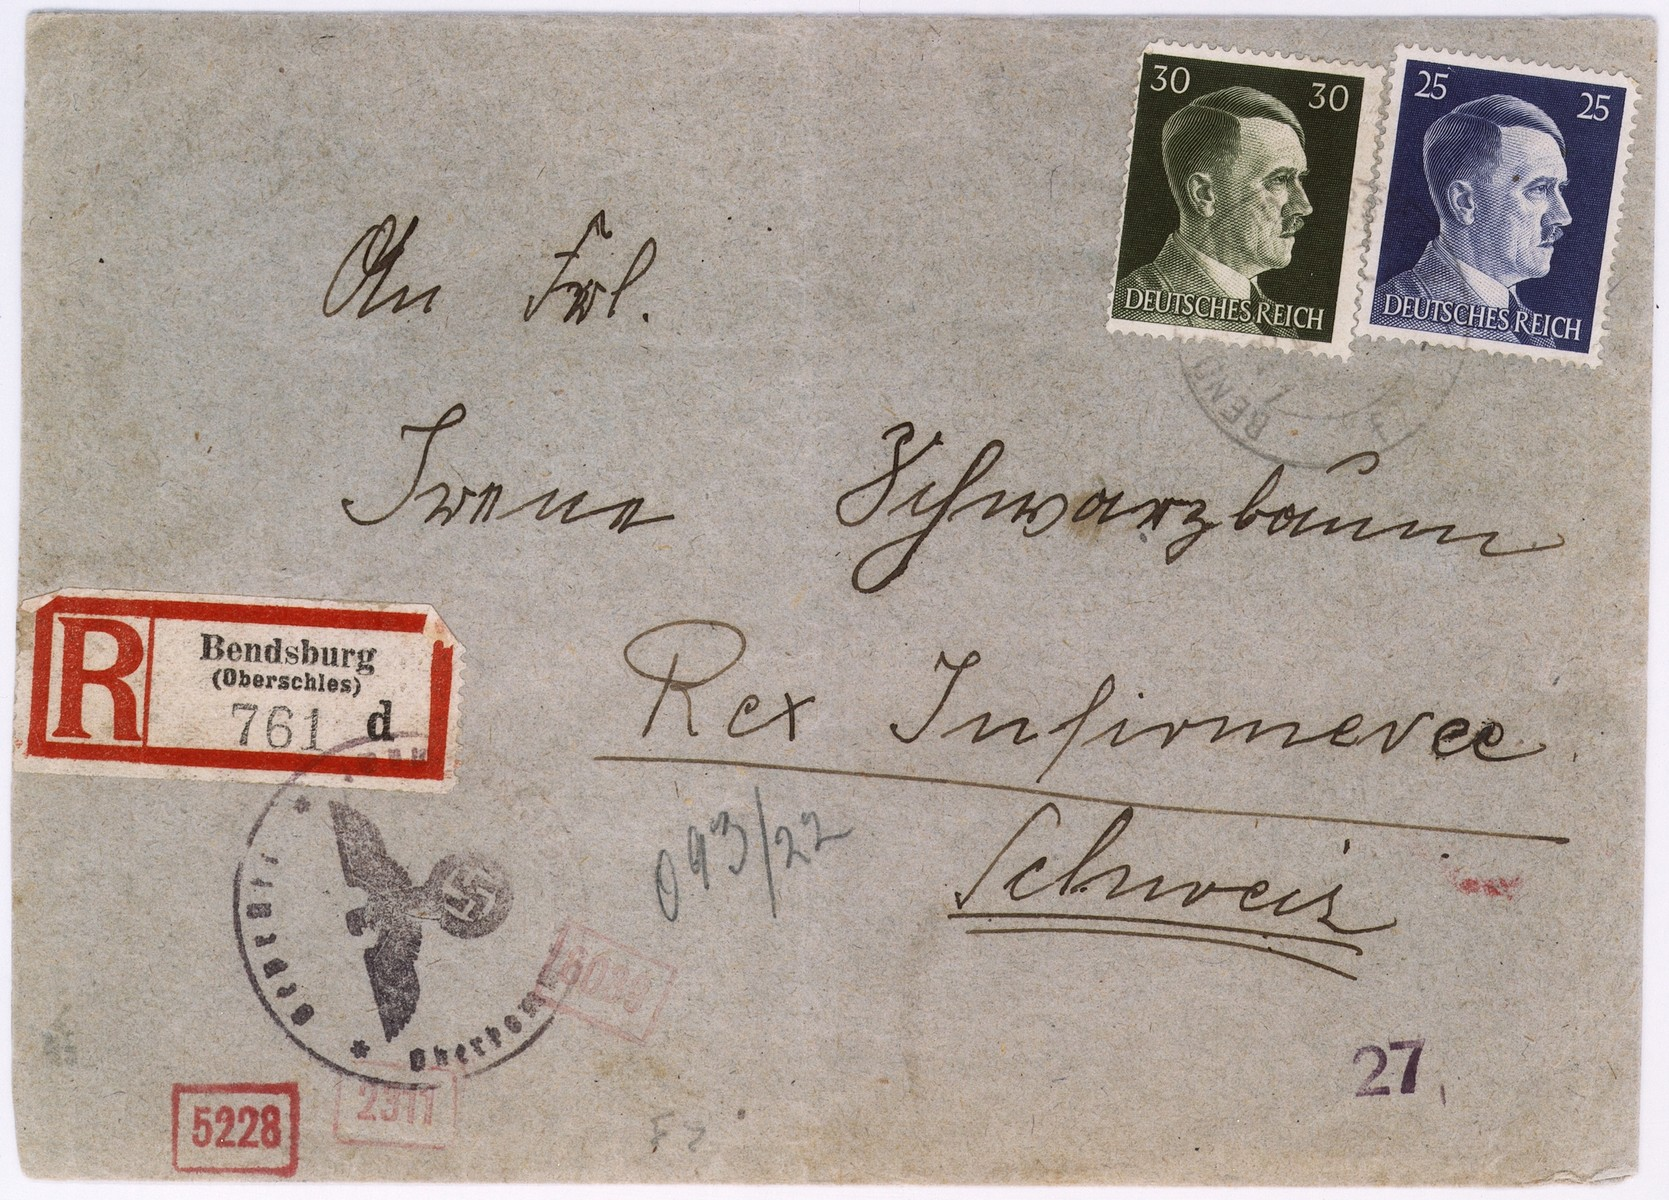 An envelope of a registered letter sent from the Bedzin ghetto by Kaminski Diamant to Alfred Schwartzbaum in Lausanne, Switzerland.  The return address of the sender or senders states: Taylors Workshop.  On the back of the envelope there is a piece of tape with the stamp of the German censor.